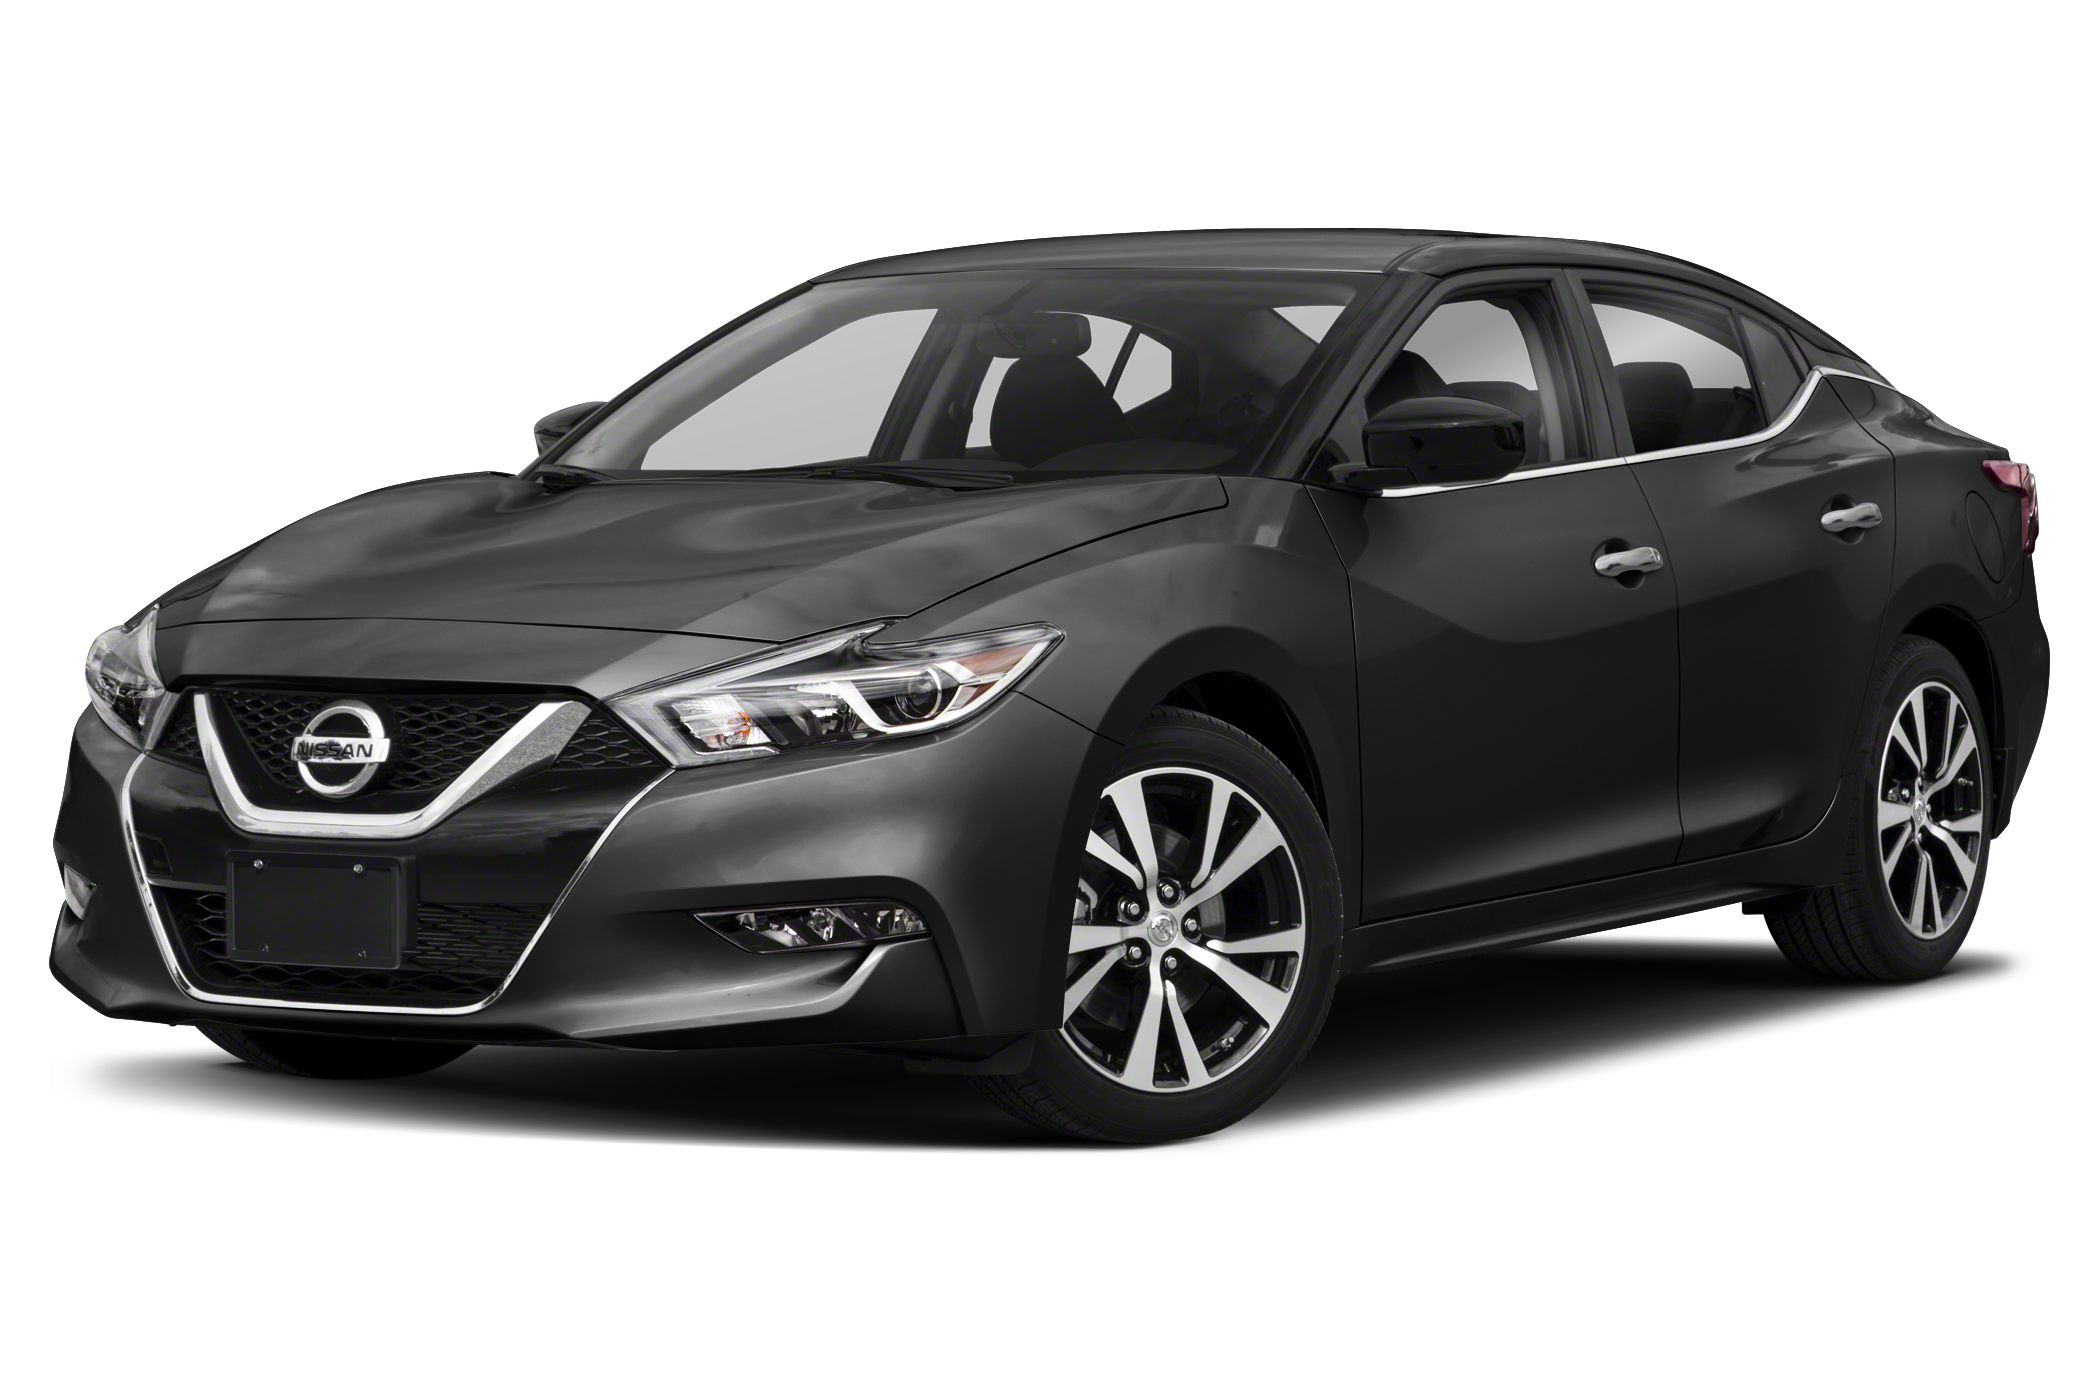 2016 Nissan Maxima previewed in With Dad Super Bowl commercial